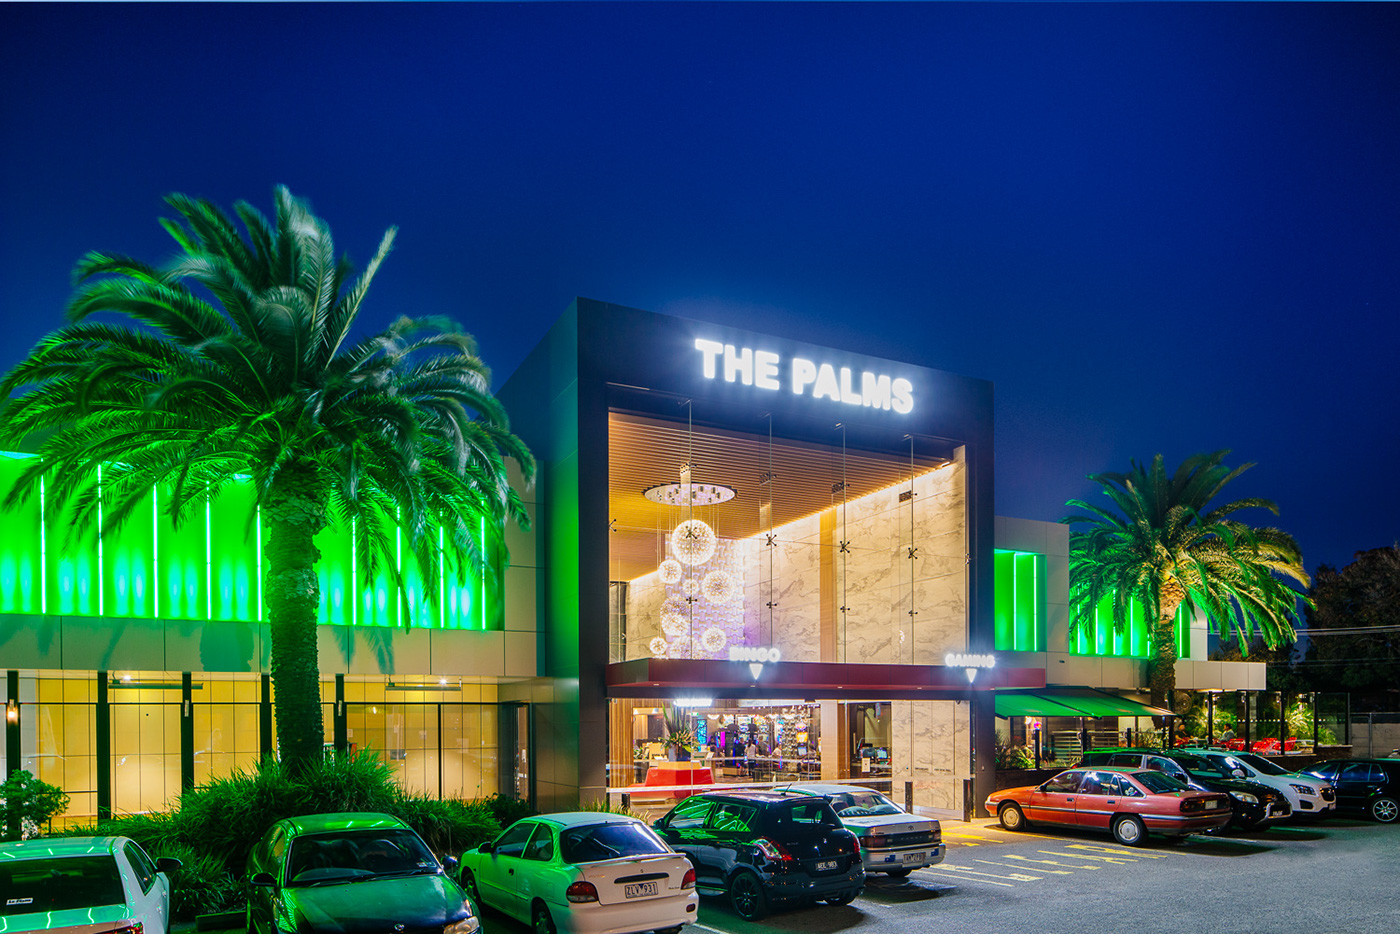 The Palms Bingo